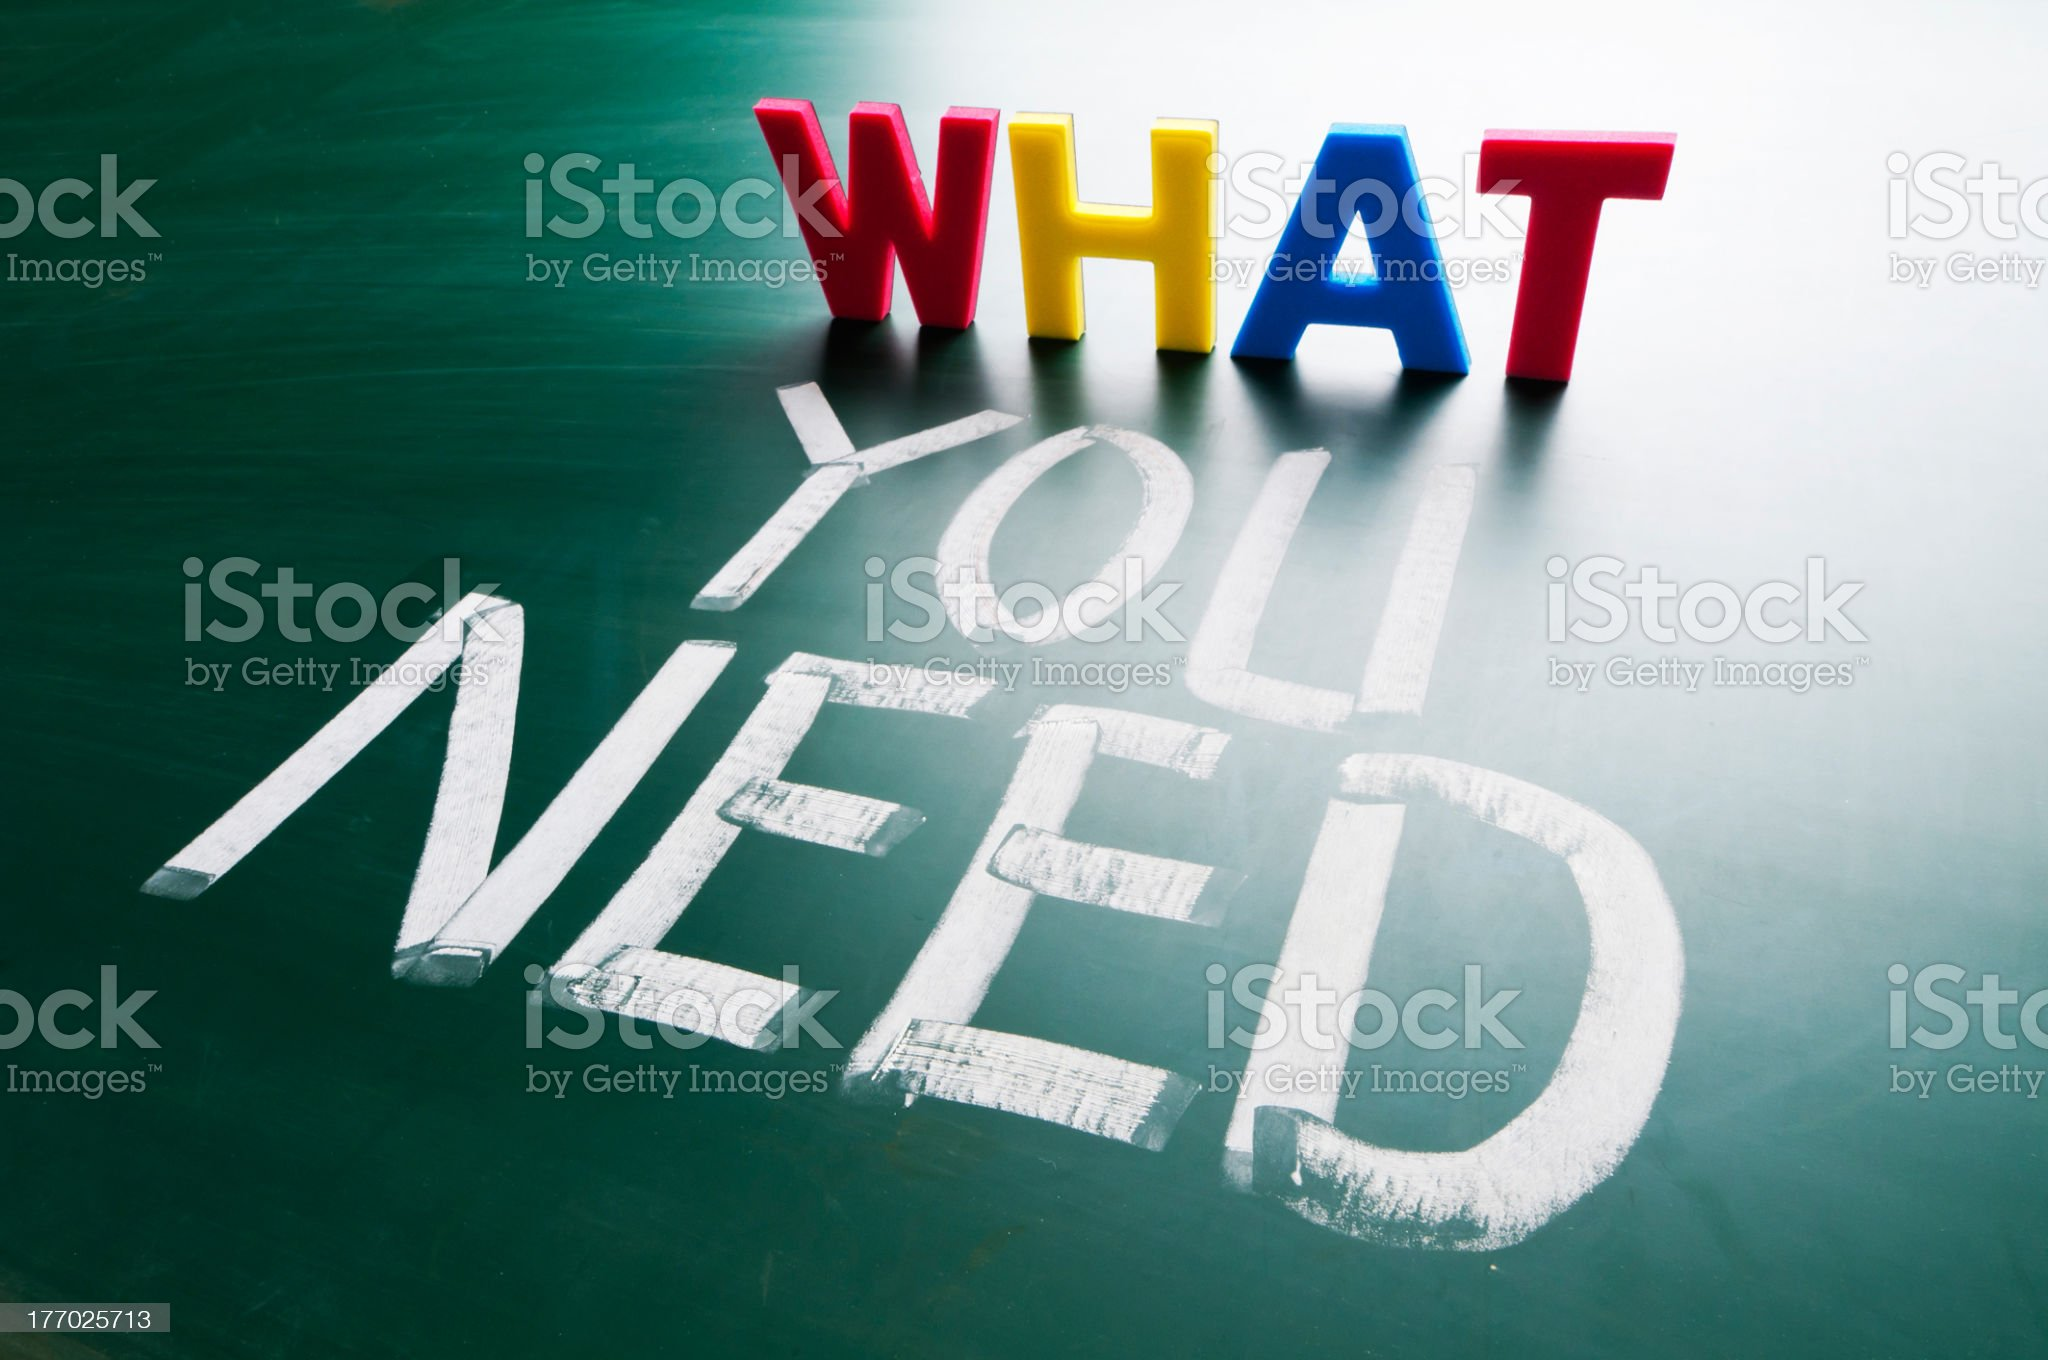 What you need colorful word and words on chalkboard royalty-free stock photo